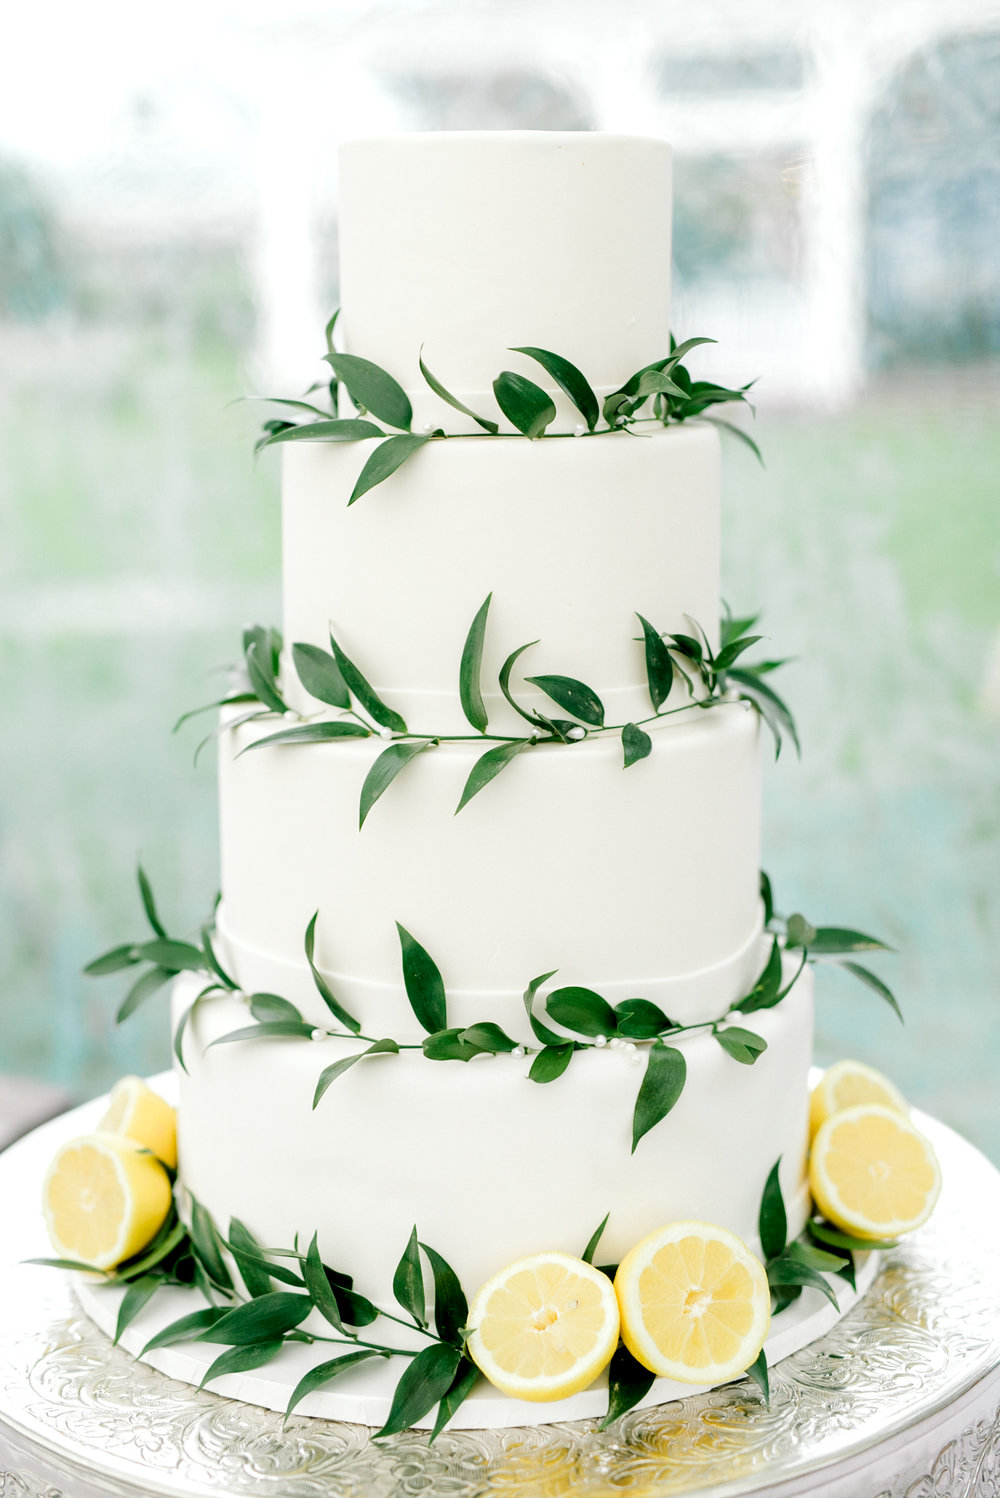 This minimal white wedding cake with lemon accents is so simple and elegant that we're swooning. It's the perfect sweet for your elegant and bright Italian themed wedding day.